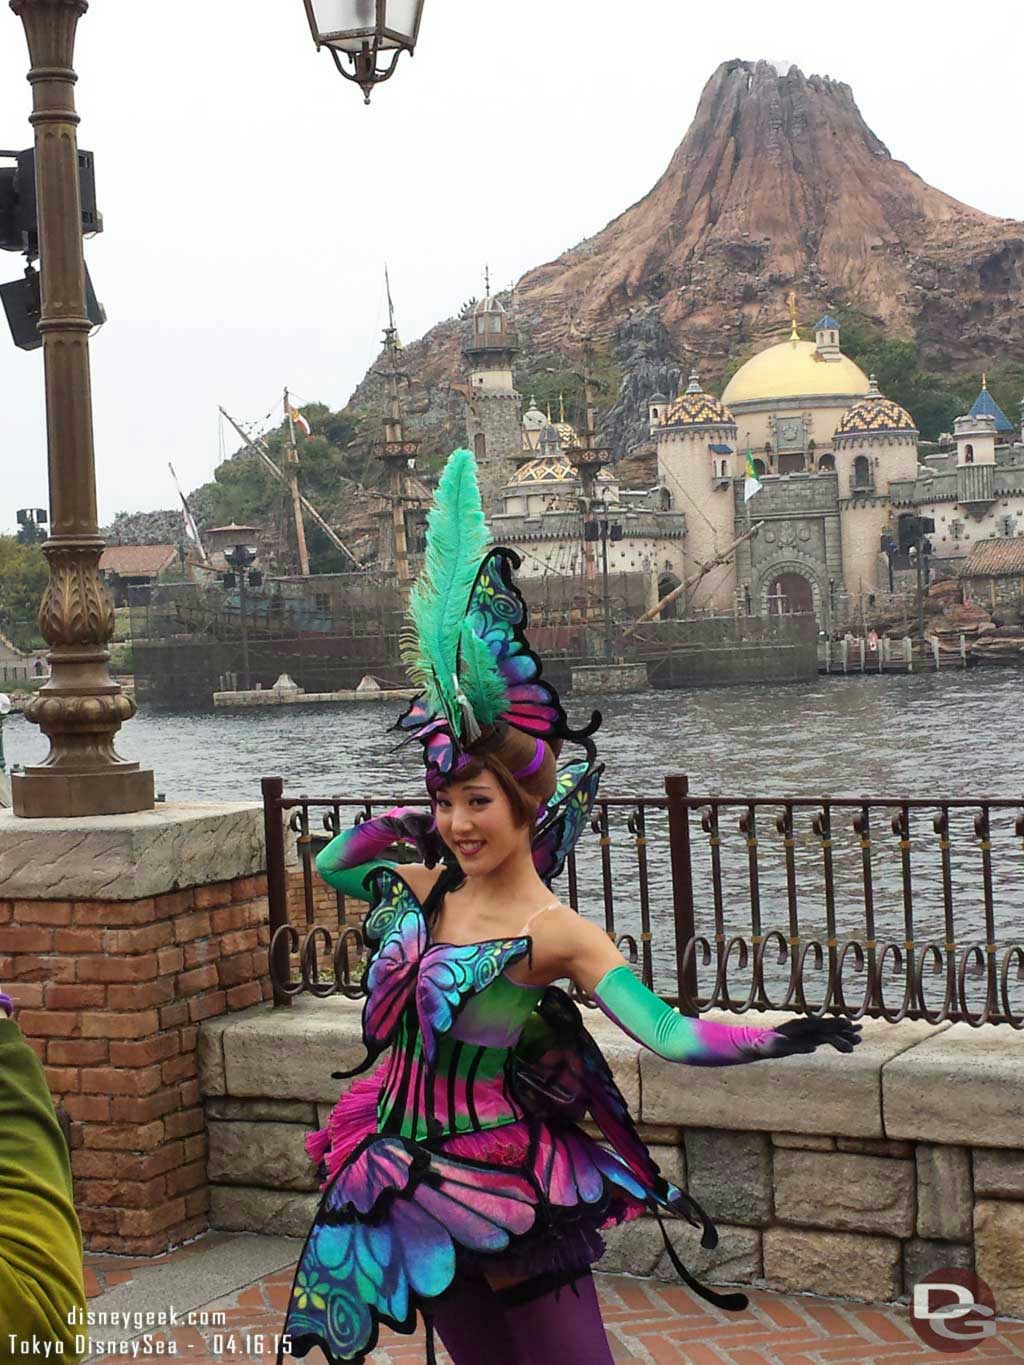 Passing by Fashionable Easter #TokyoDisneySea